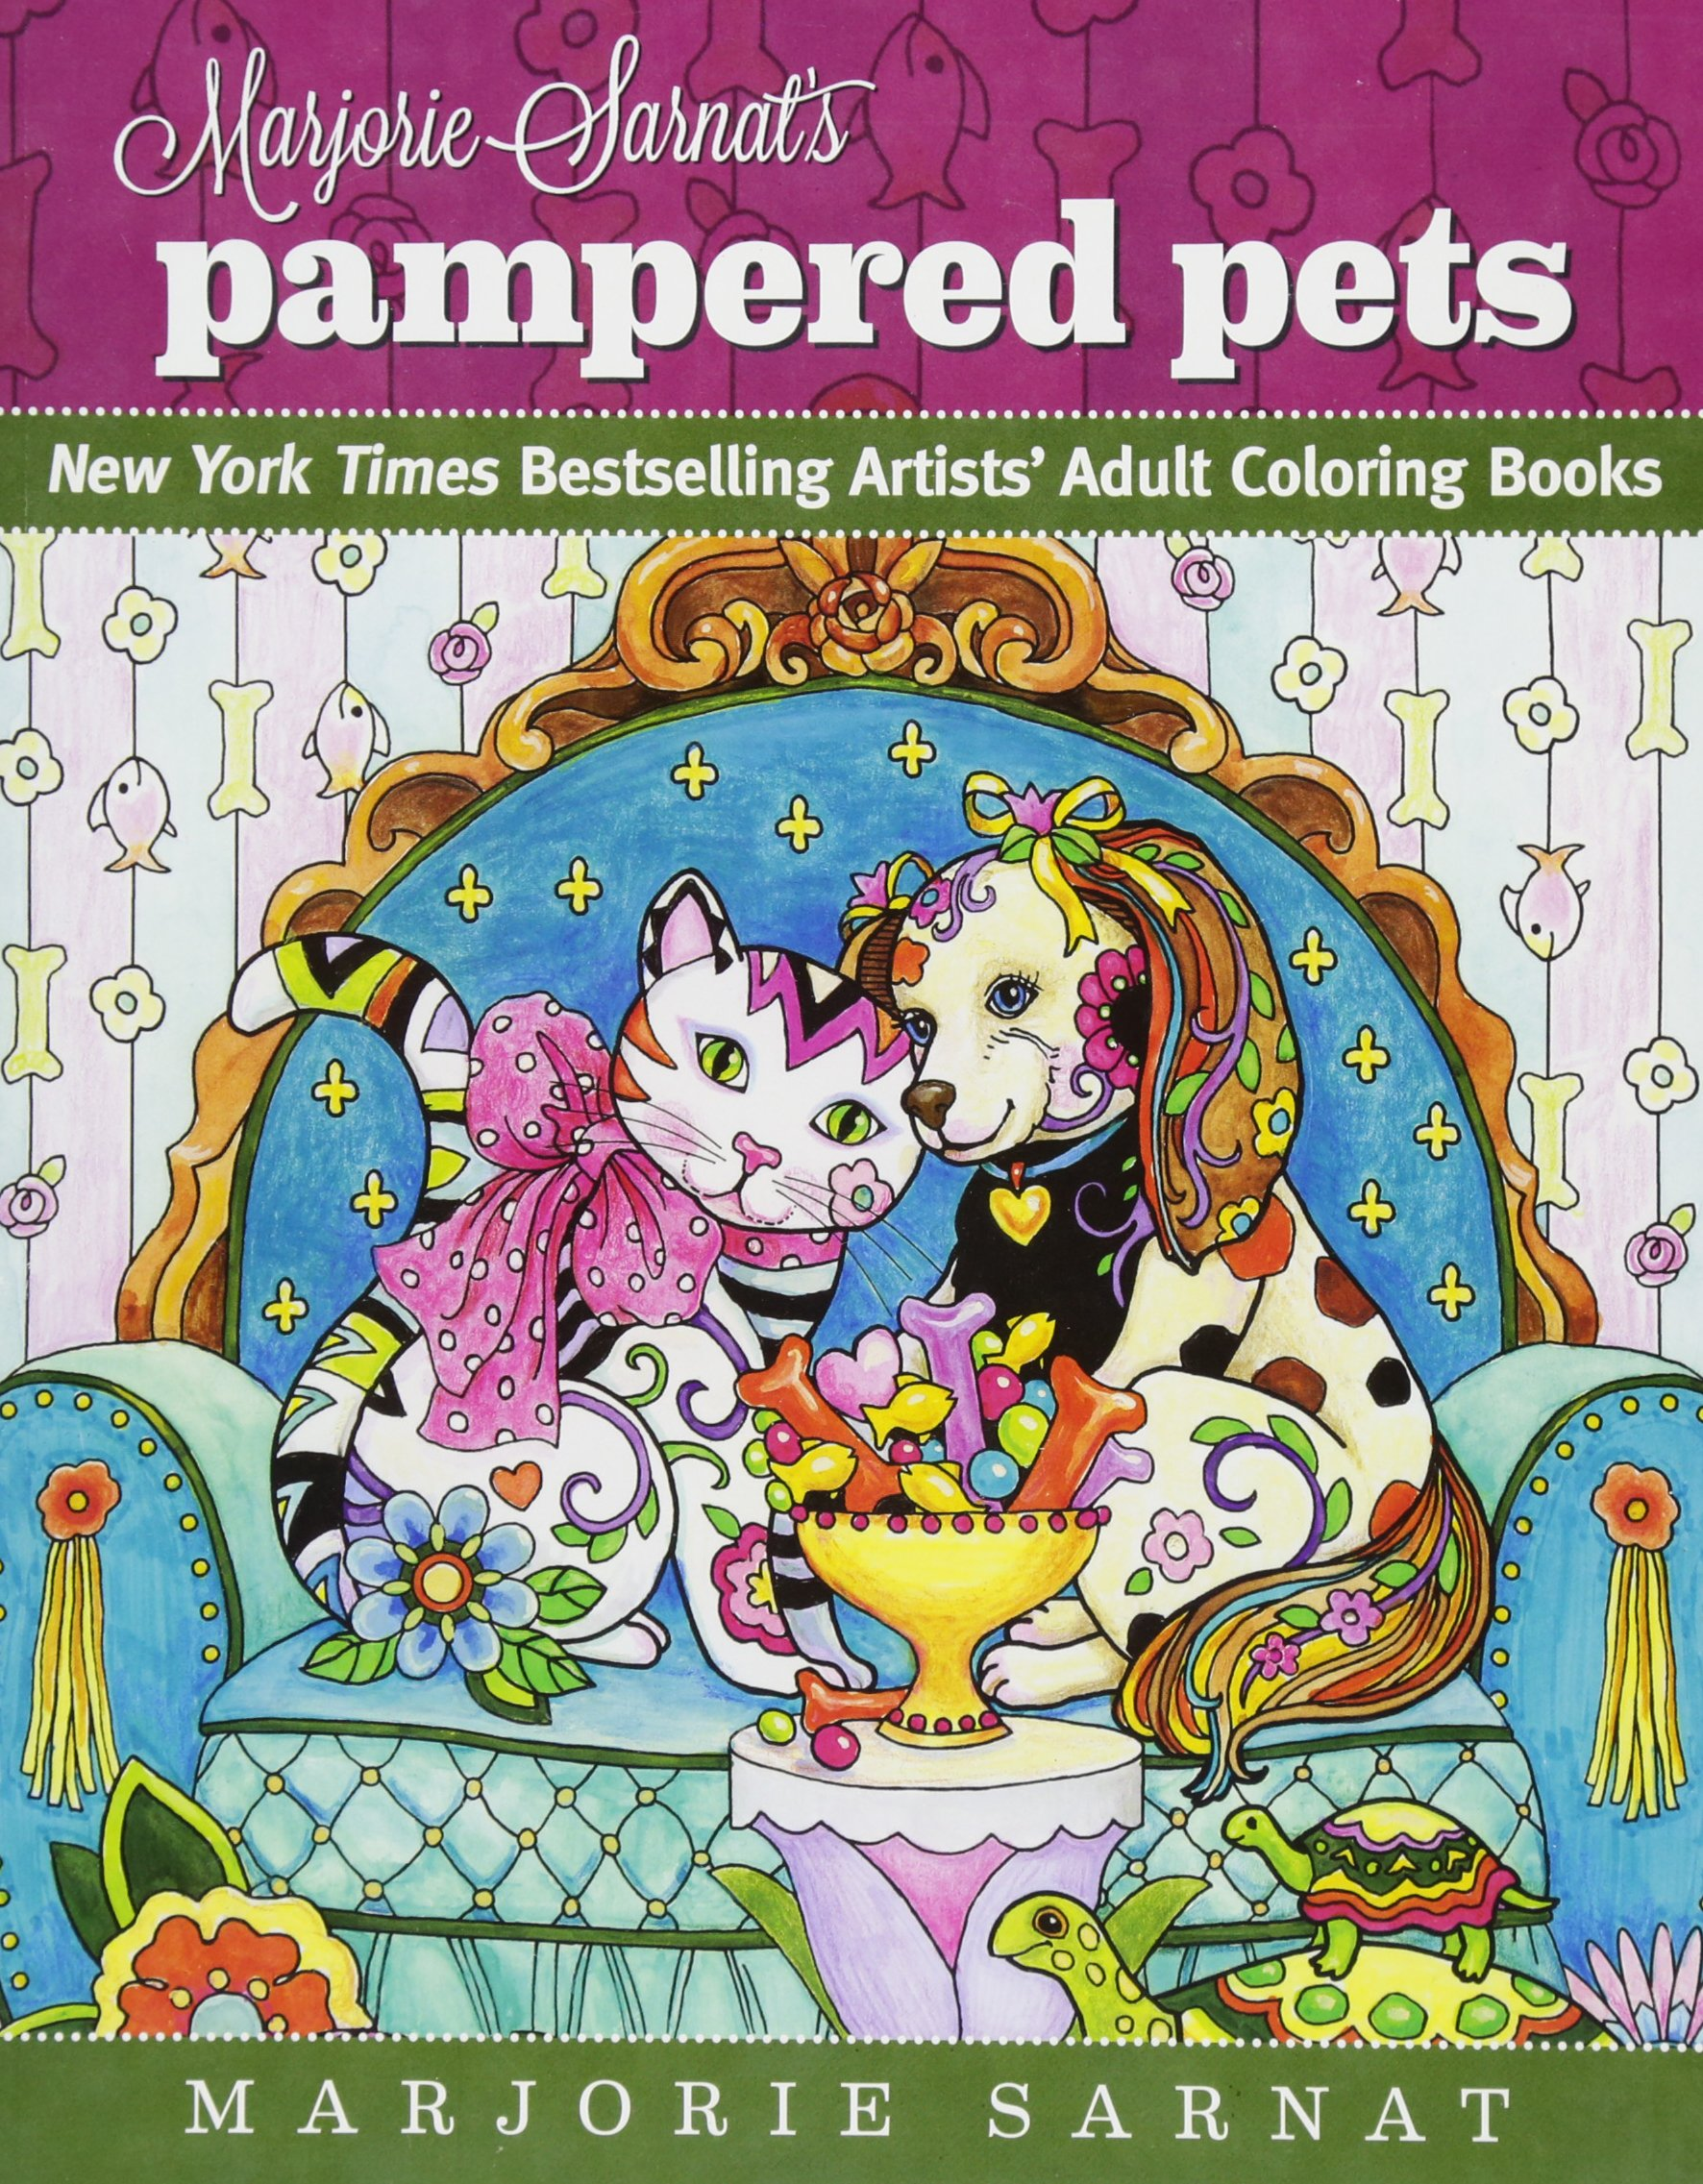 Marjorie Sarnat's Pampered Pets: New York Times Bestselling Artists' Adult Coloring Books ebook